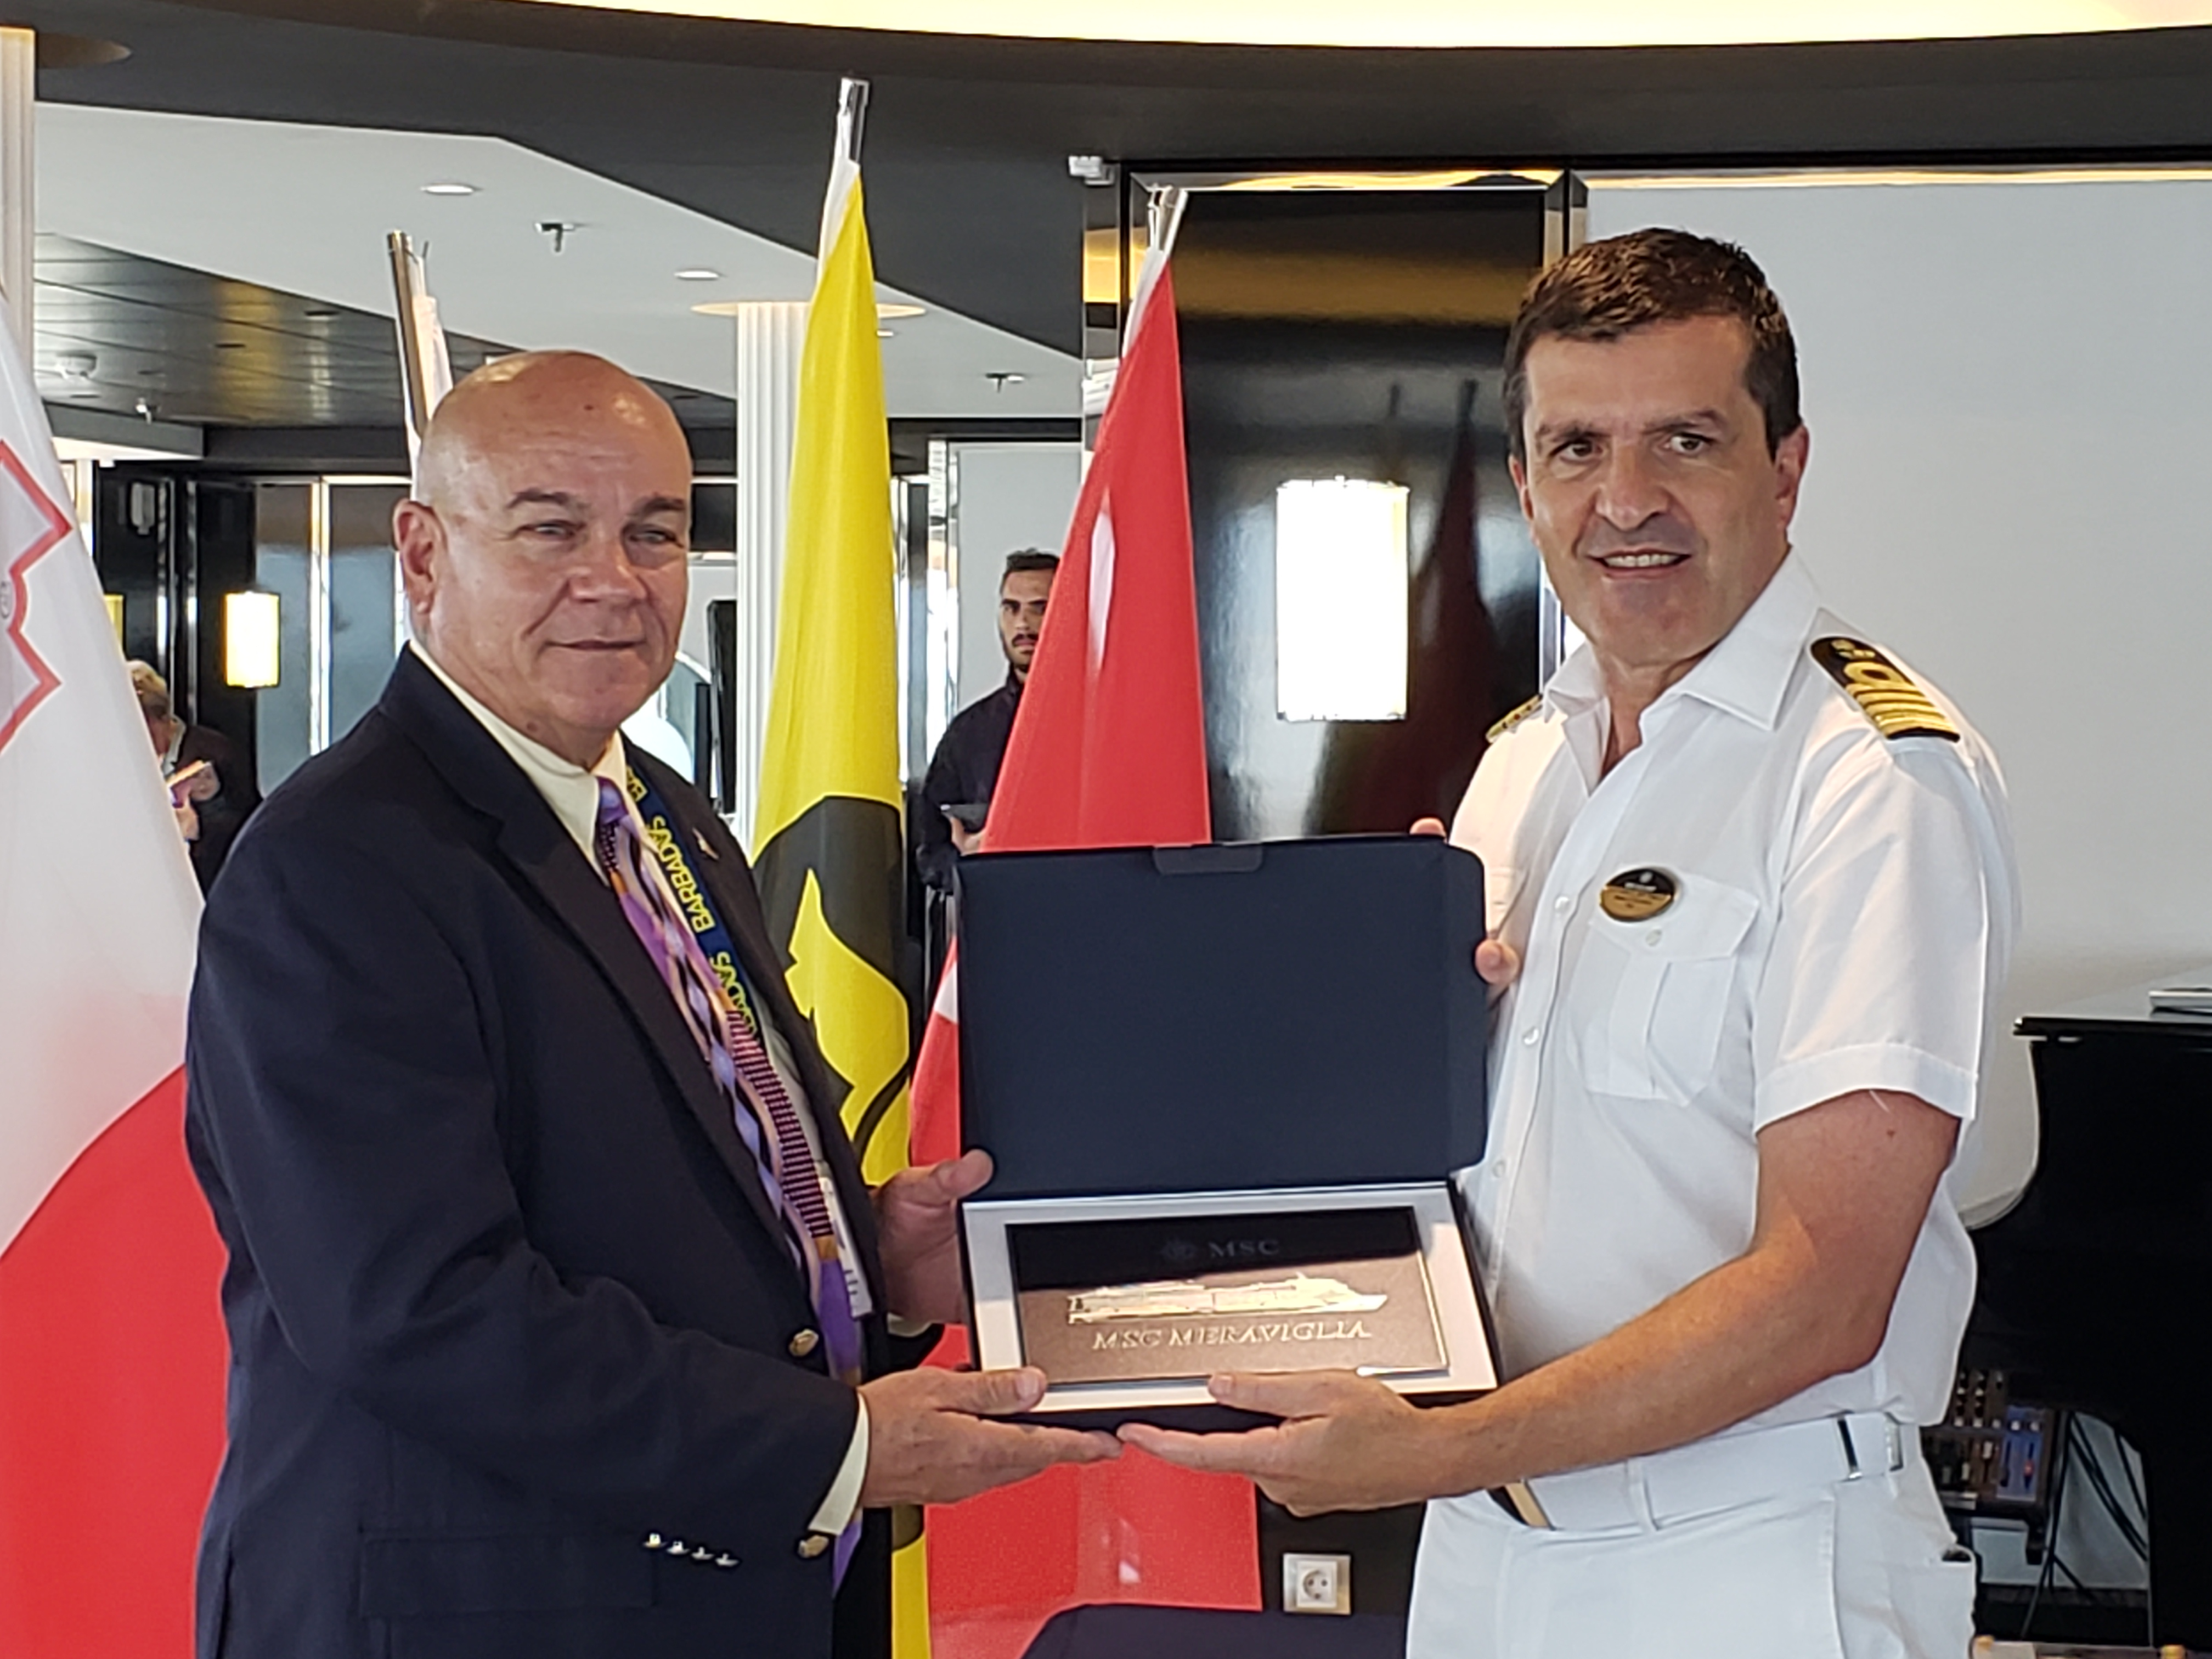 2.	Harbour Master Carl Gonsalves (left) presents the Barbados plaque to captain Stefano Battinelli.